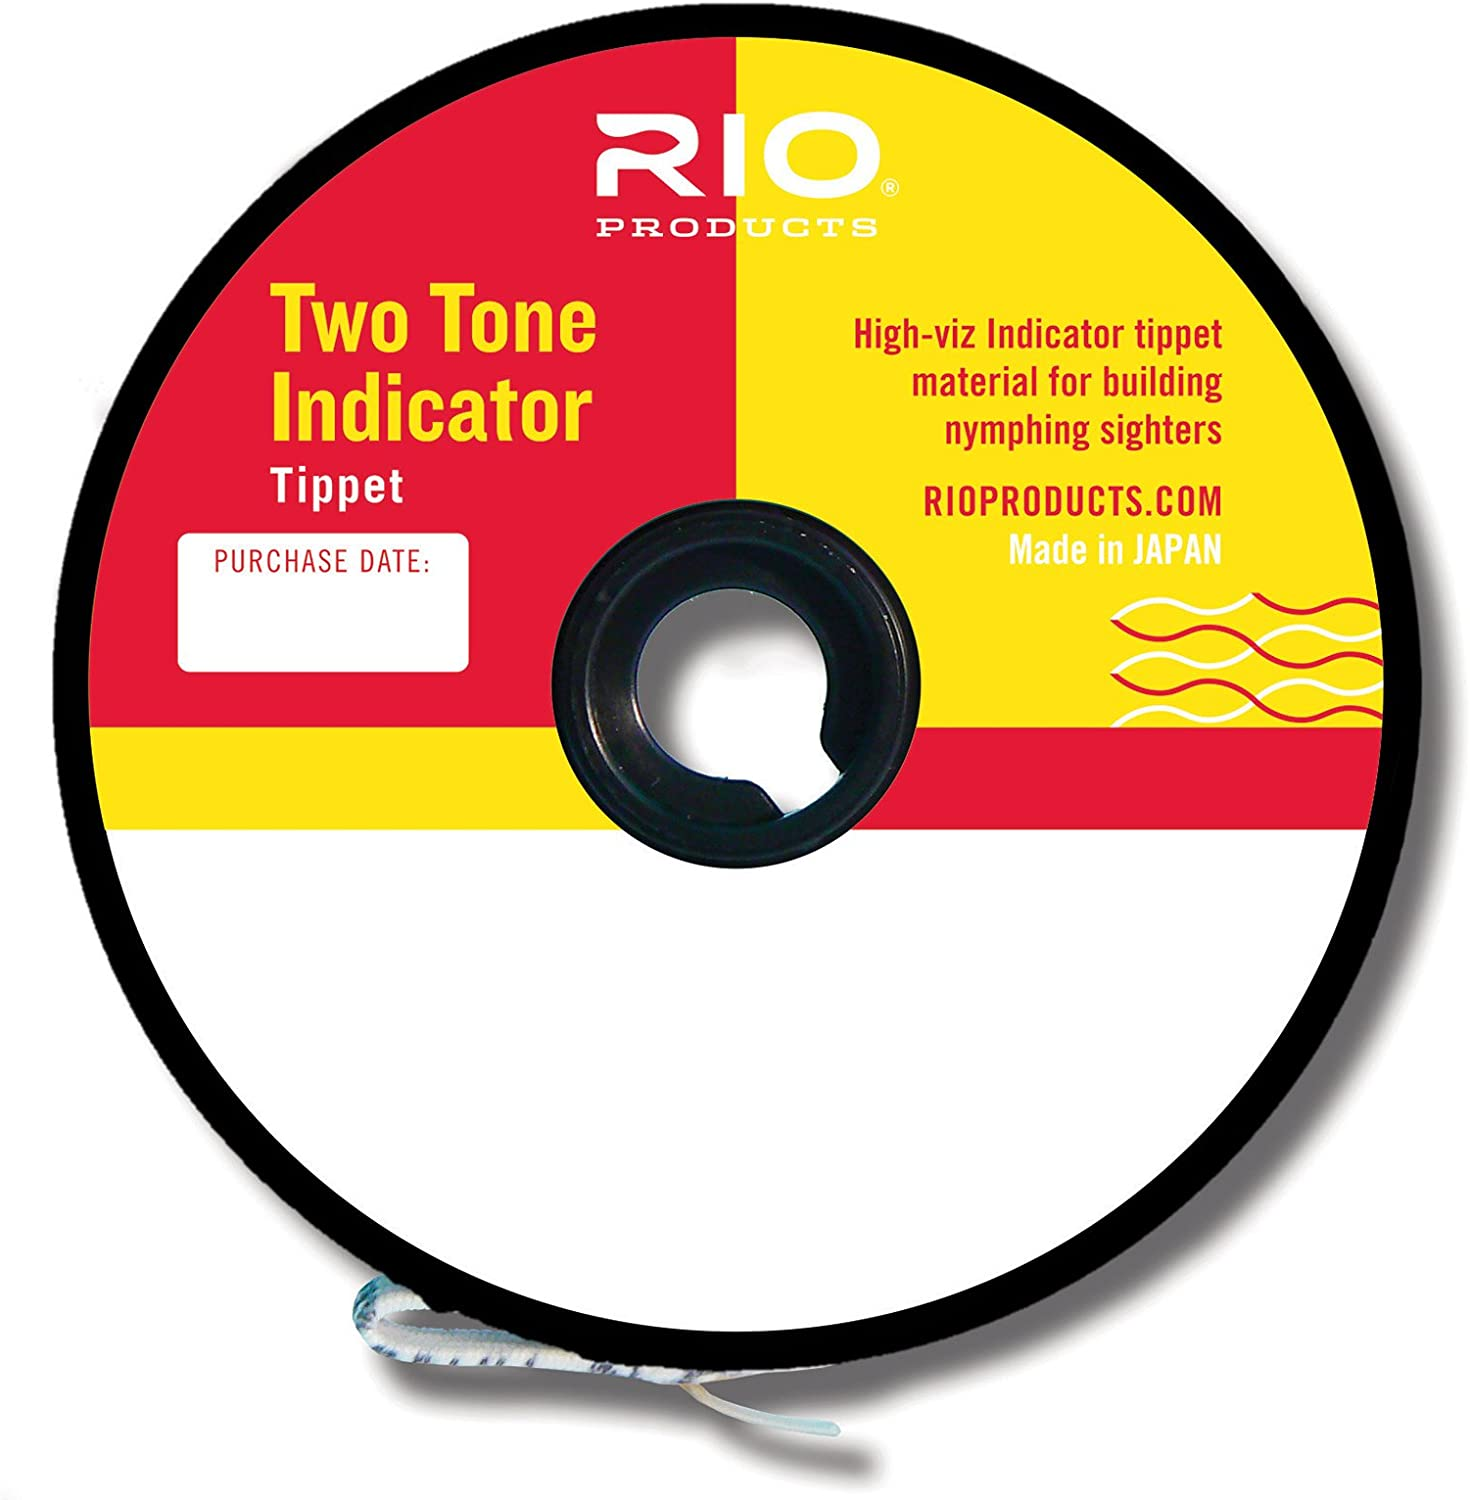 RIO 2-Tone Indicator Pink Chartreuse Fly Fishing Line Nymphing Tippet